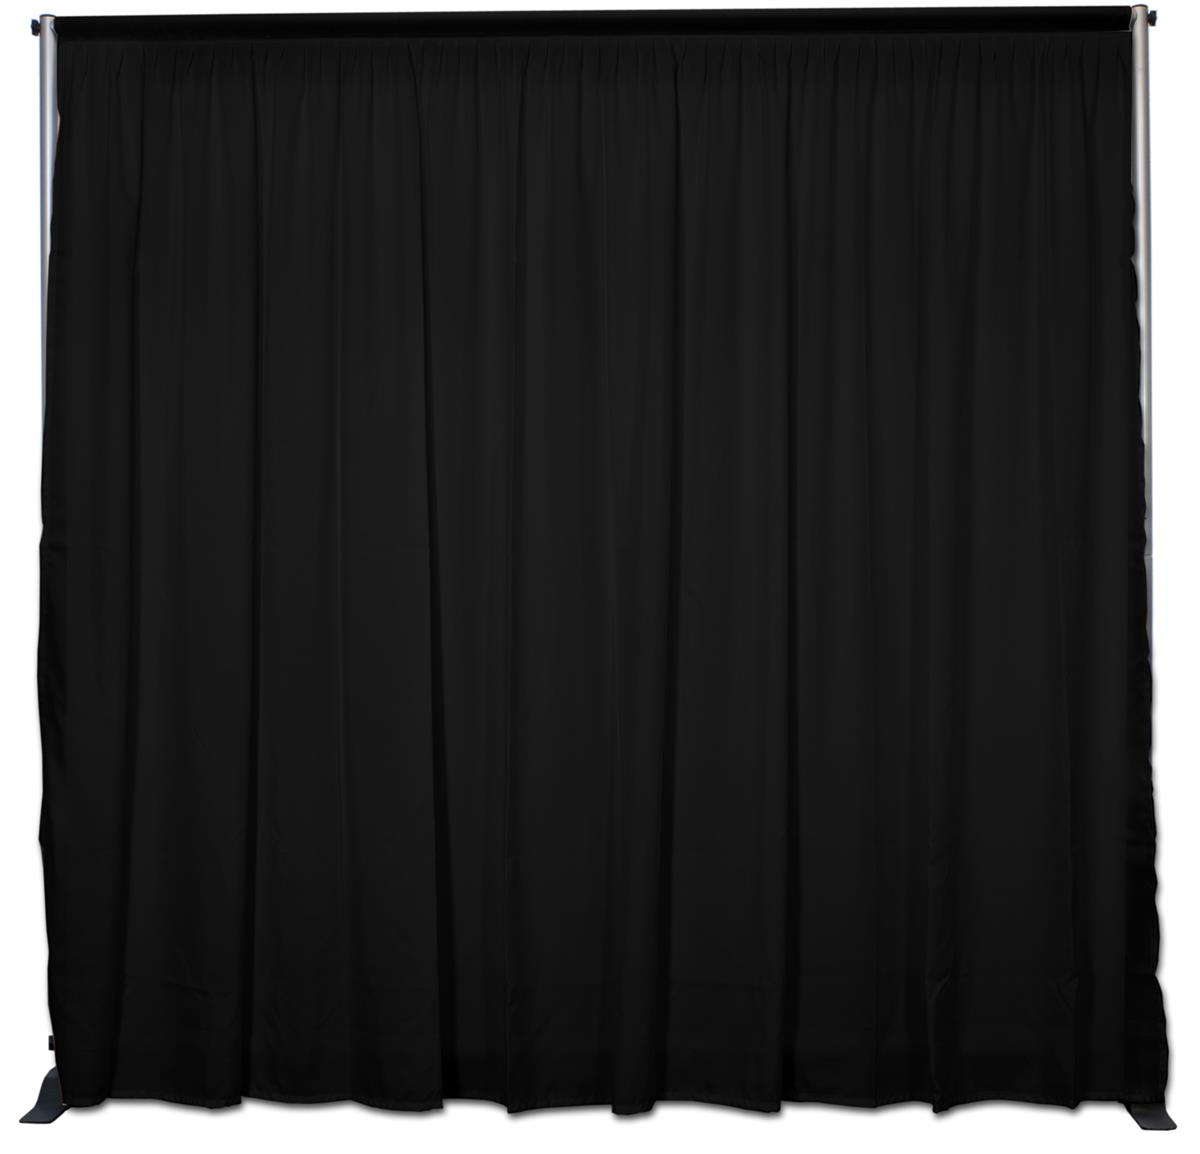 Image Result For P O Booth Curtains For Sale